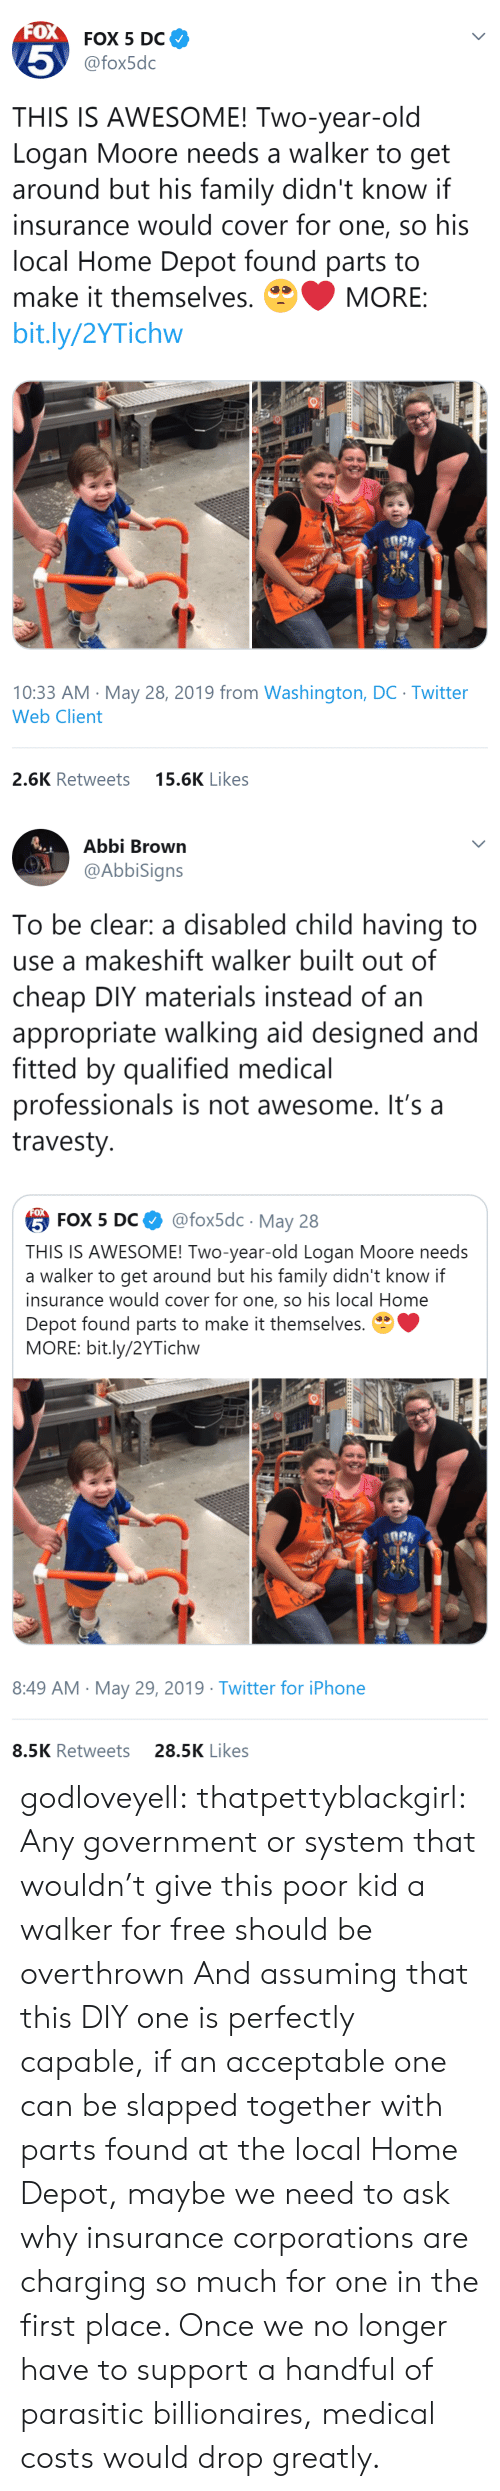 Fitted: FOX  FOX 5 DC  5  @fox5dc  THIS IS AWESOME! Two-year-old  Logan Moore needs a walker to get  around but his family didn't know if  insurance would cover for one, so his  local Home Depot found parts to  make it themselves.  MORE:  bit.ly/2YTichw  10:33 AM May 28, 2019 from Washington, DC Twitter  Web Client  15.6K Likes  2.6K Retweets   Abbi Brown  @AbbiSigns  To be clear: a disabled child having to  use a makeshift walker built out of  cheap DIY materials instead of an  appropriate walking aid designed and  fitted by qualified medical  professionals is not awesome. It's a  travesty  FOX  @fox5dc May 28  5 FOX 5 DС  THIS IS AWESOME! Two-year-old Logan Moore needs  a walker to get around but his family didn't know if  insurance would cover for one, so his local Home  Depot found parts to make it themselves.  MORE: bit.ly/2YTichw  8:49 AM May 29, 2019 Twitter for iPhone  28.5K Likes  8.5K Retweets godloveyell:  thatpettyblackgirl:  Any government or system that wouldn't give this poor kid a walker for free should be overthrown   And assuming that this DIY one is perfectly capable, if an acceptable one can be slapped together with parts found at the local Home Depot, maybe we need to ask why insurance corporations are charging so much for one in the first place.  Once we no longer have to support a handful of parasitic billionaires, medical costs would drop greatly.